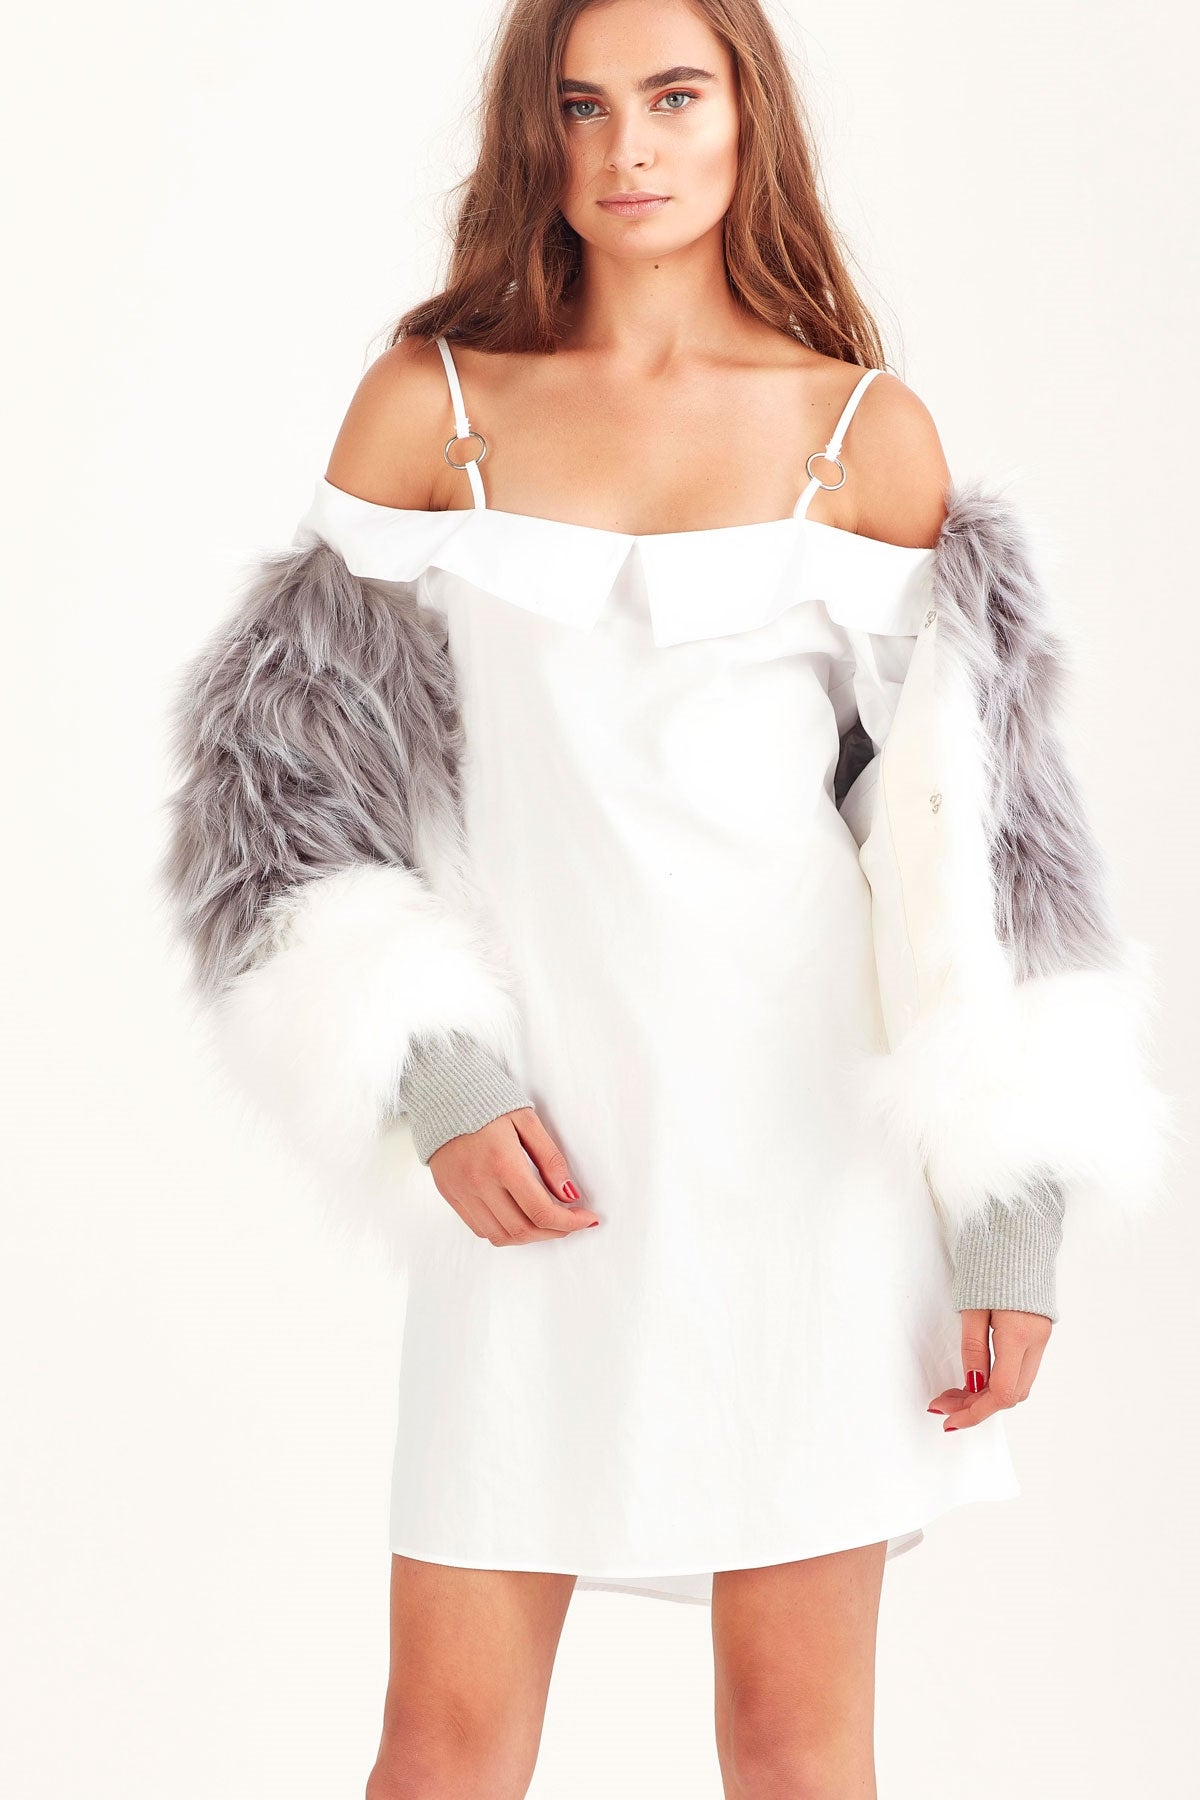 Coop by trelise cooper Fur-Real Faux Fur Cropped Coat Shop New Zealand Designer Clothing Stockists